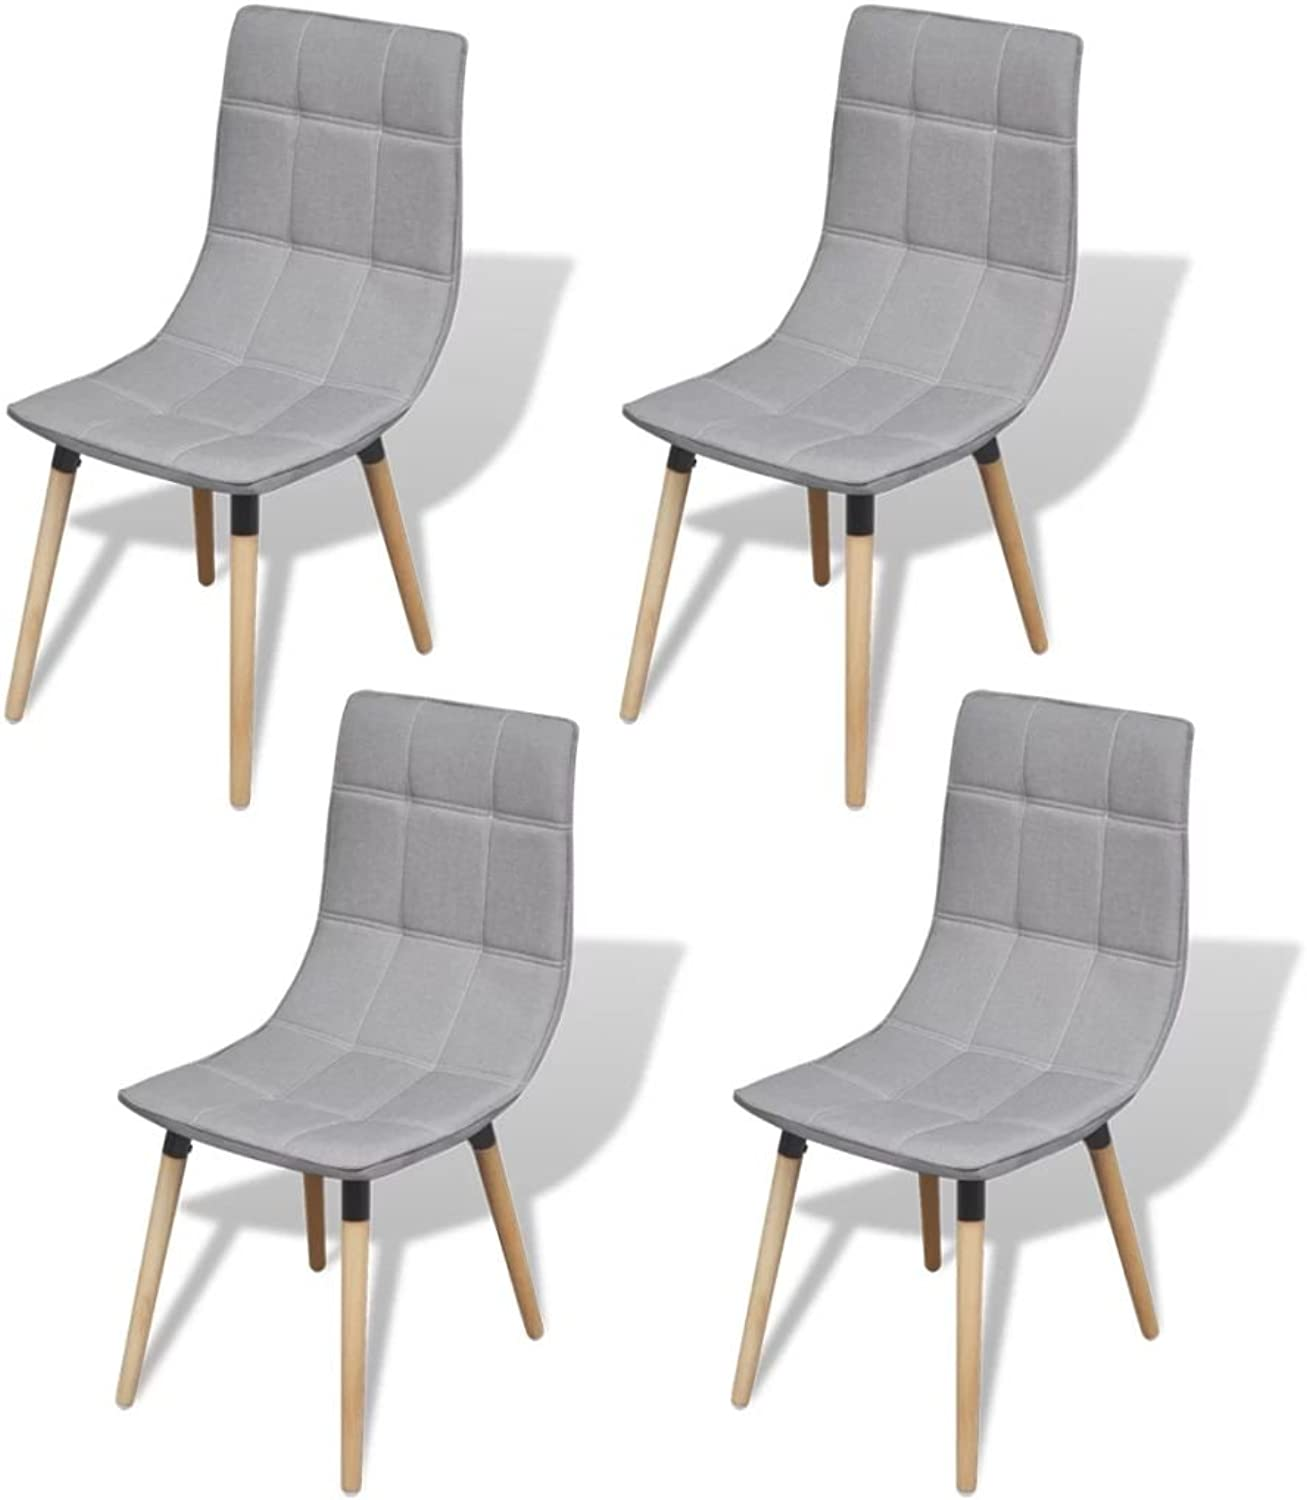 Festnight Dining Chairs Household Stool Fabric Office Stool 4 pcs Light Grey